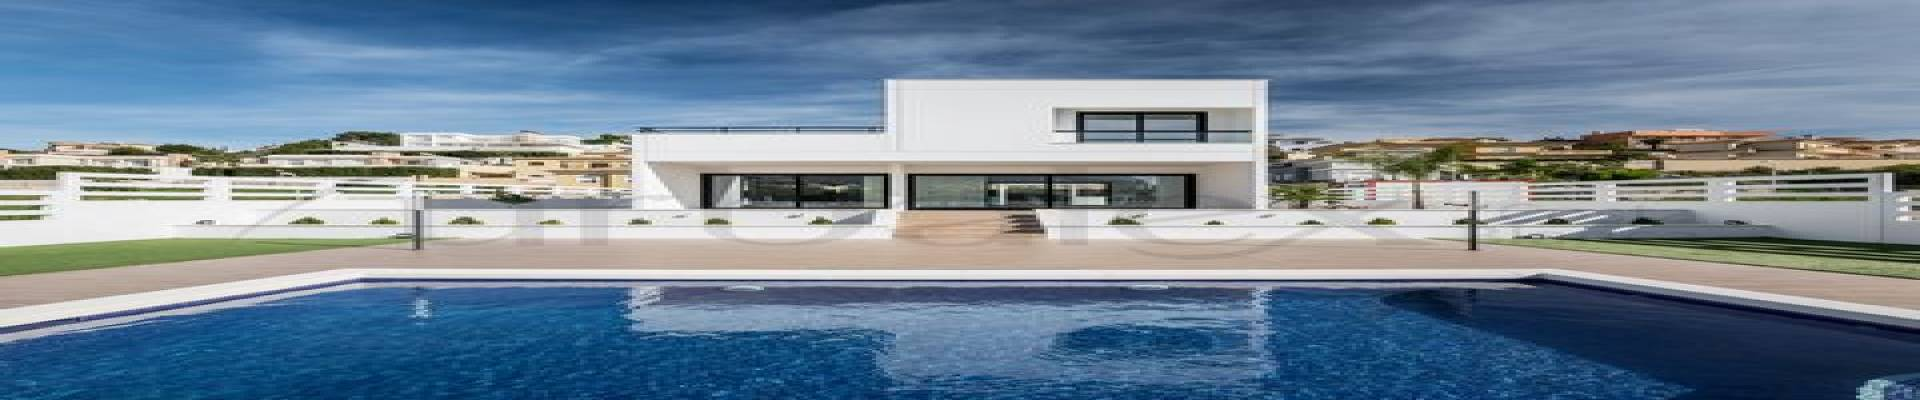 Spain Alicante Calpe 03710, 3 Bedrooms Bedrooms, ,2 BathroomsBathrooms,Villa,For sale,8799